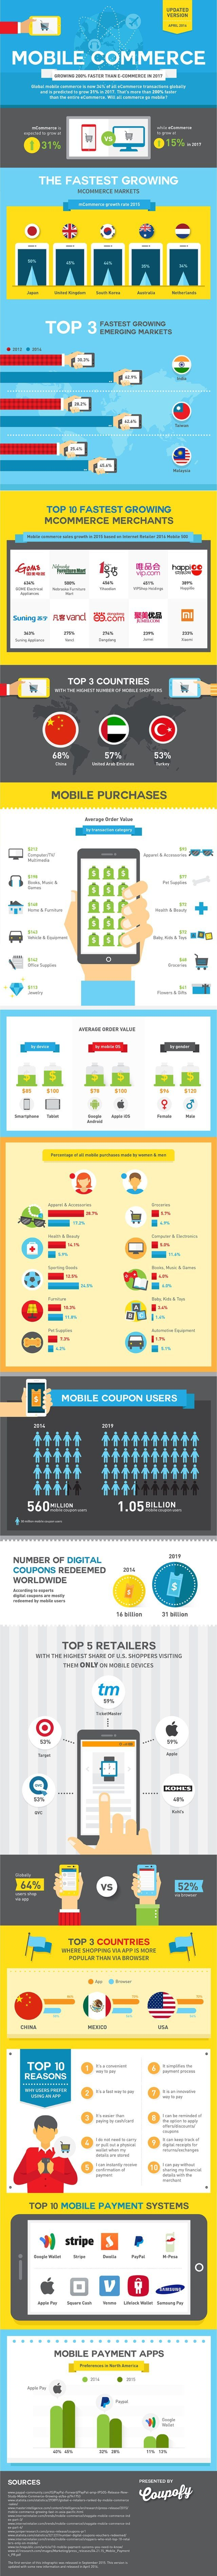 Mobile Commerce Growth 2016